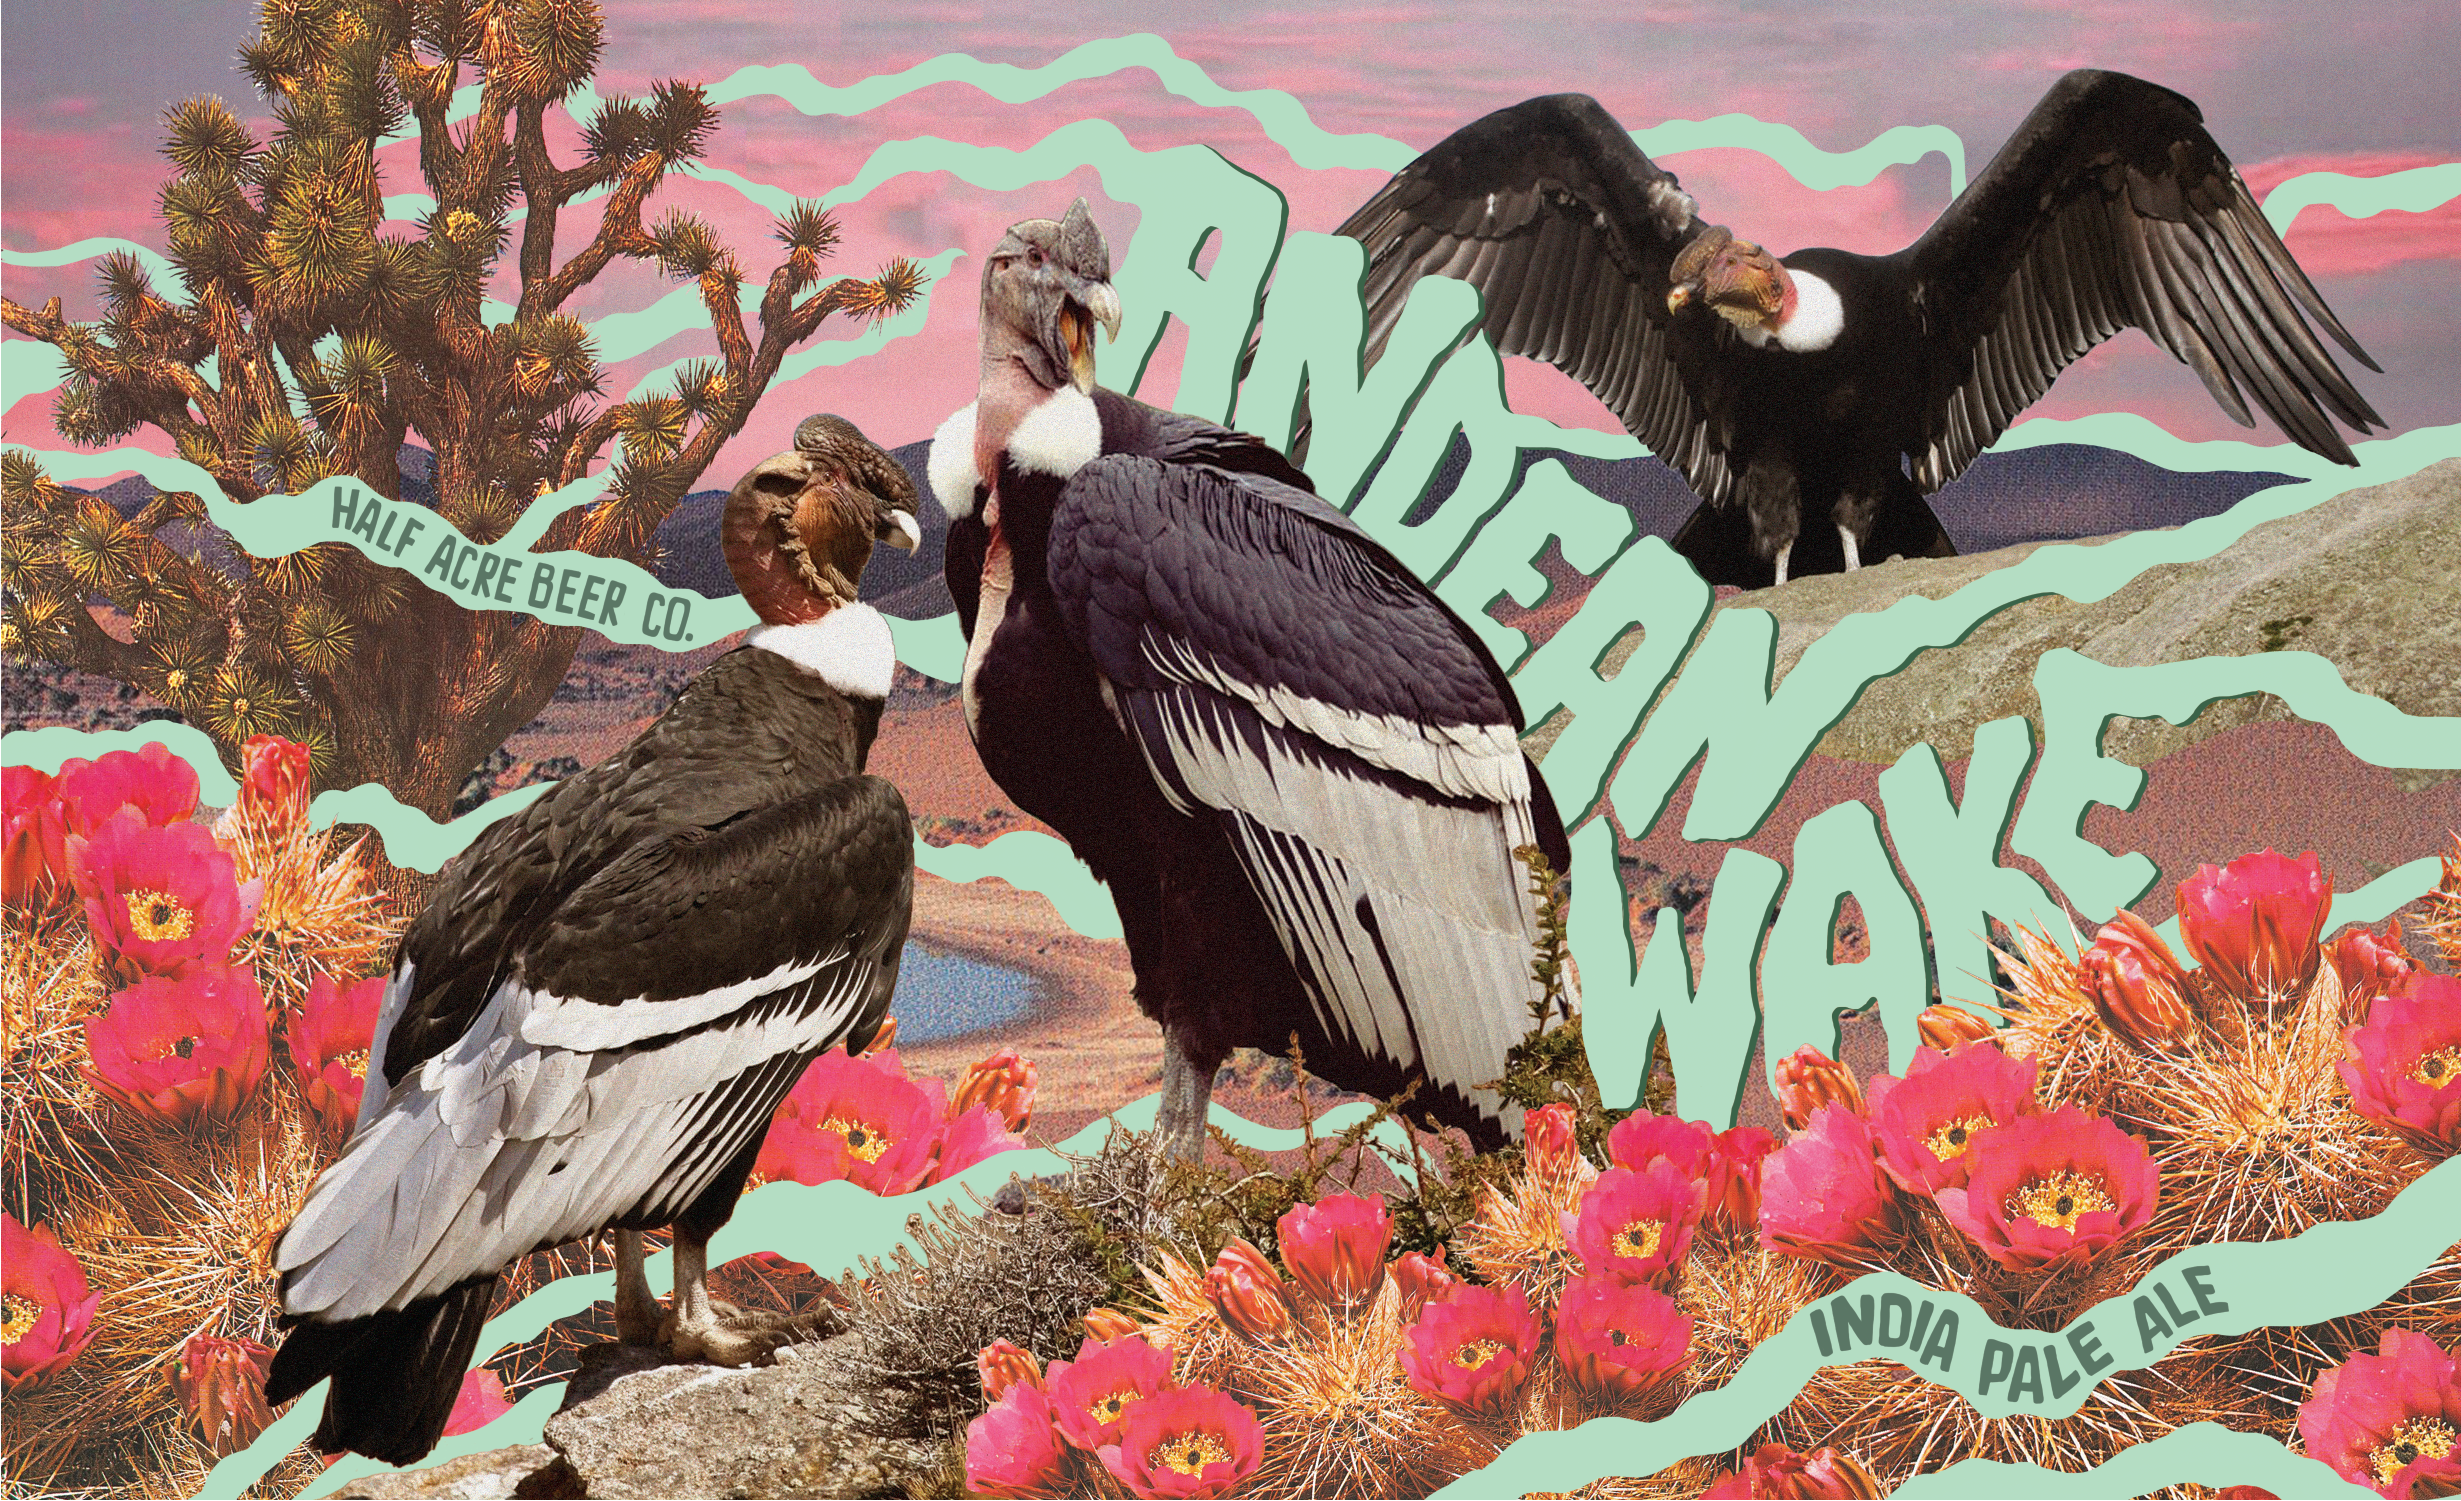 andean_wake_web.png